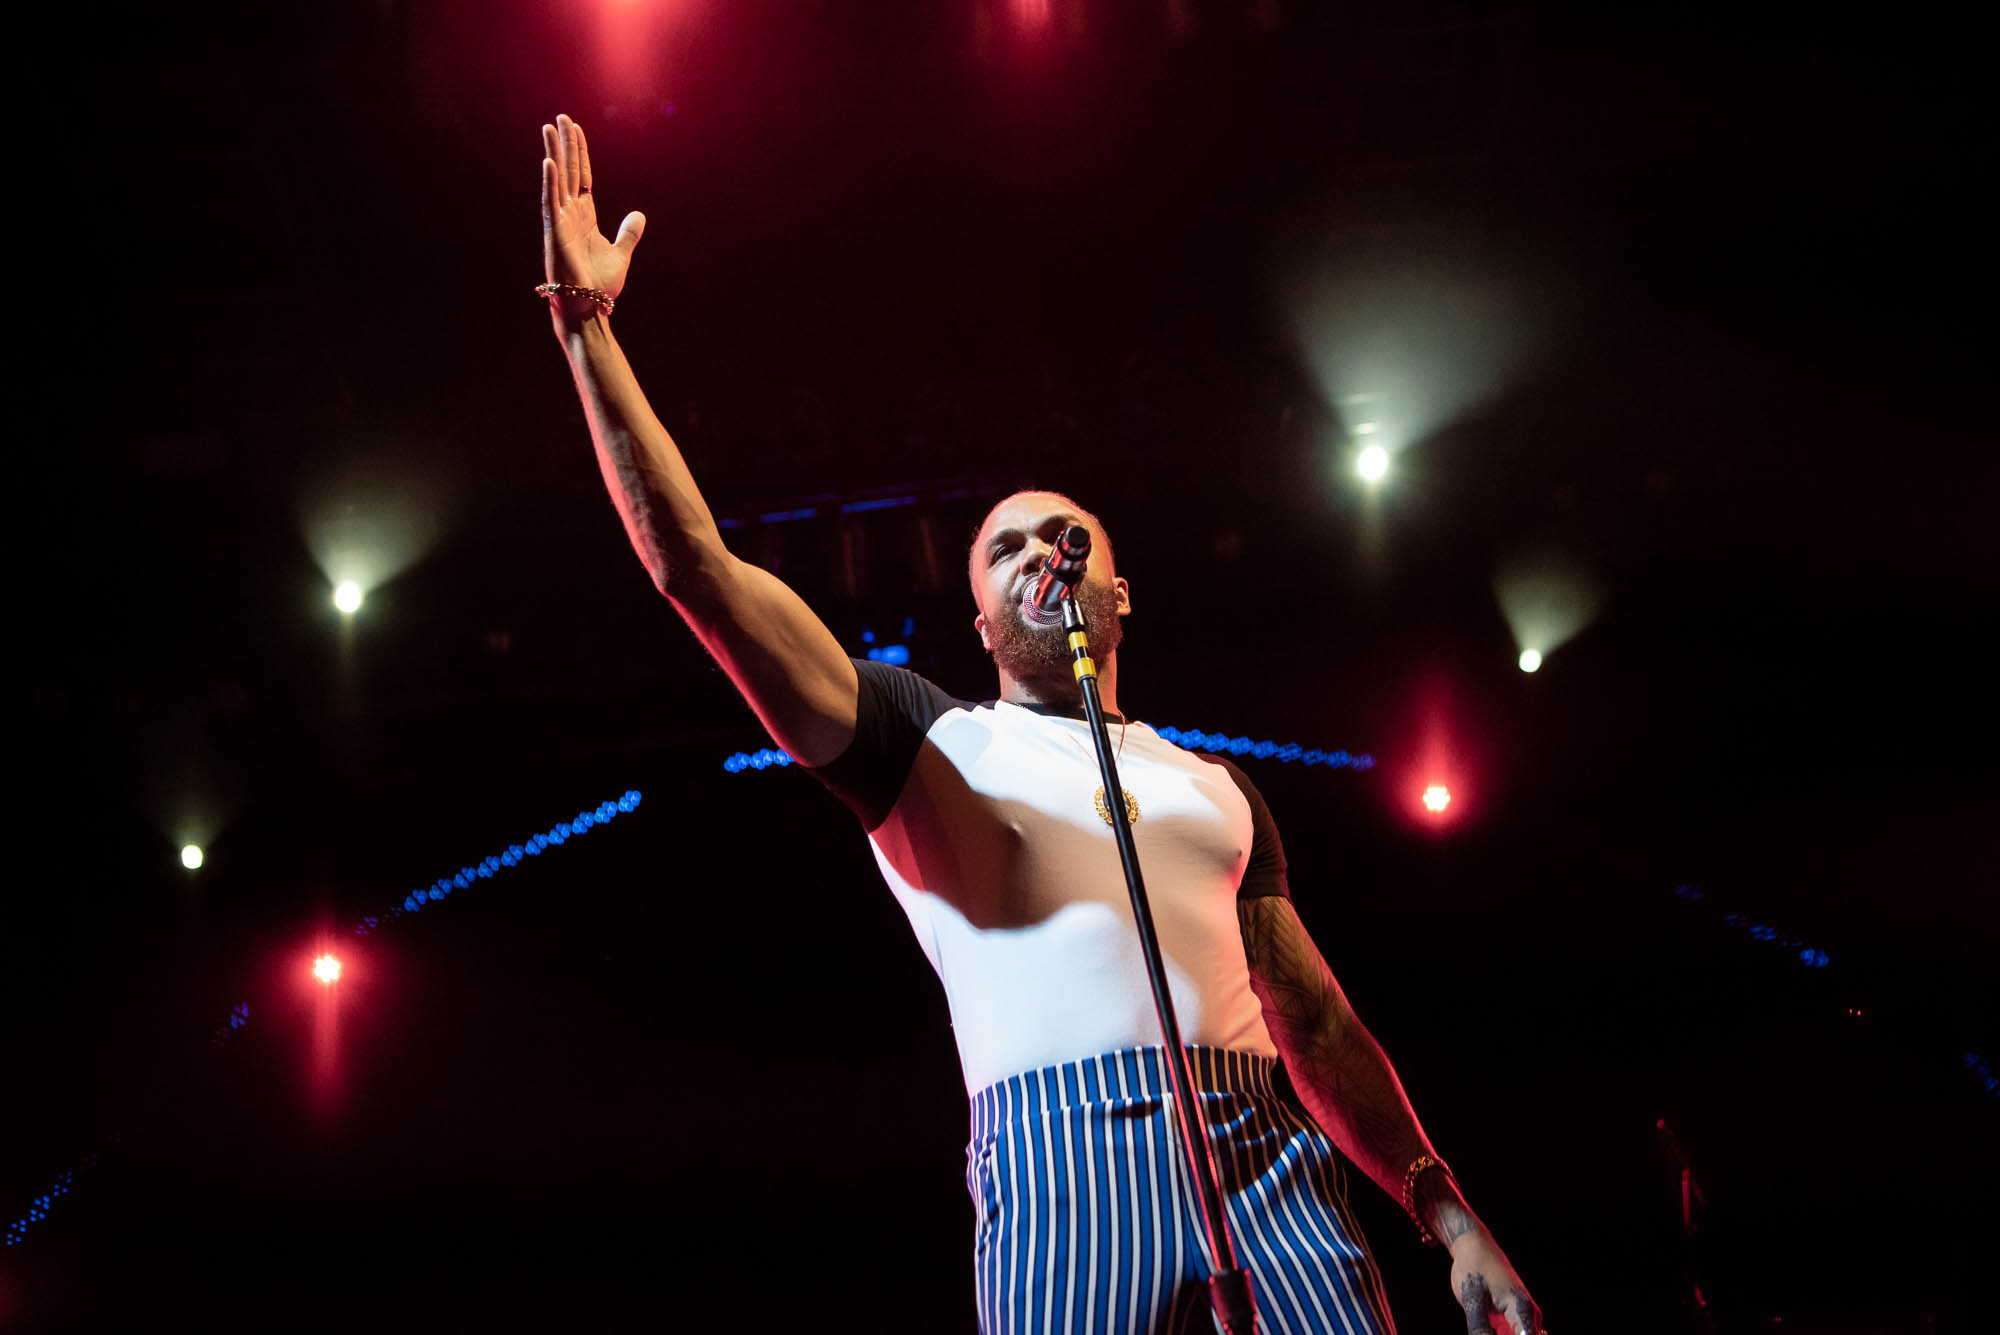 Jidenna performs at BRIC Celebrate Brooklyn! Festival at Prospect Park in Brooklyn, NY on Friday, July 26, 2019.